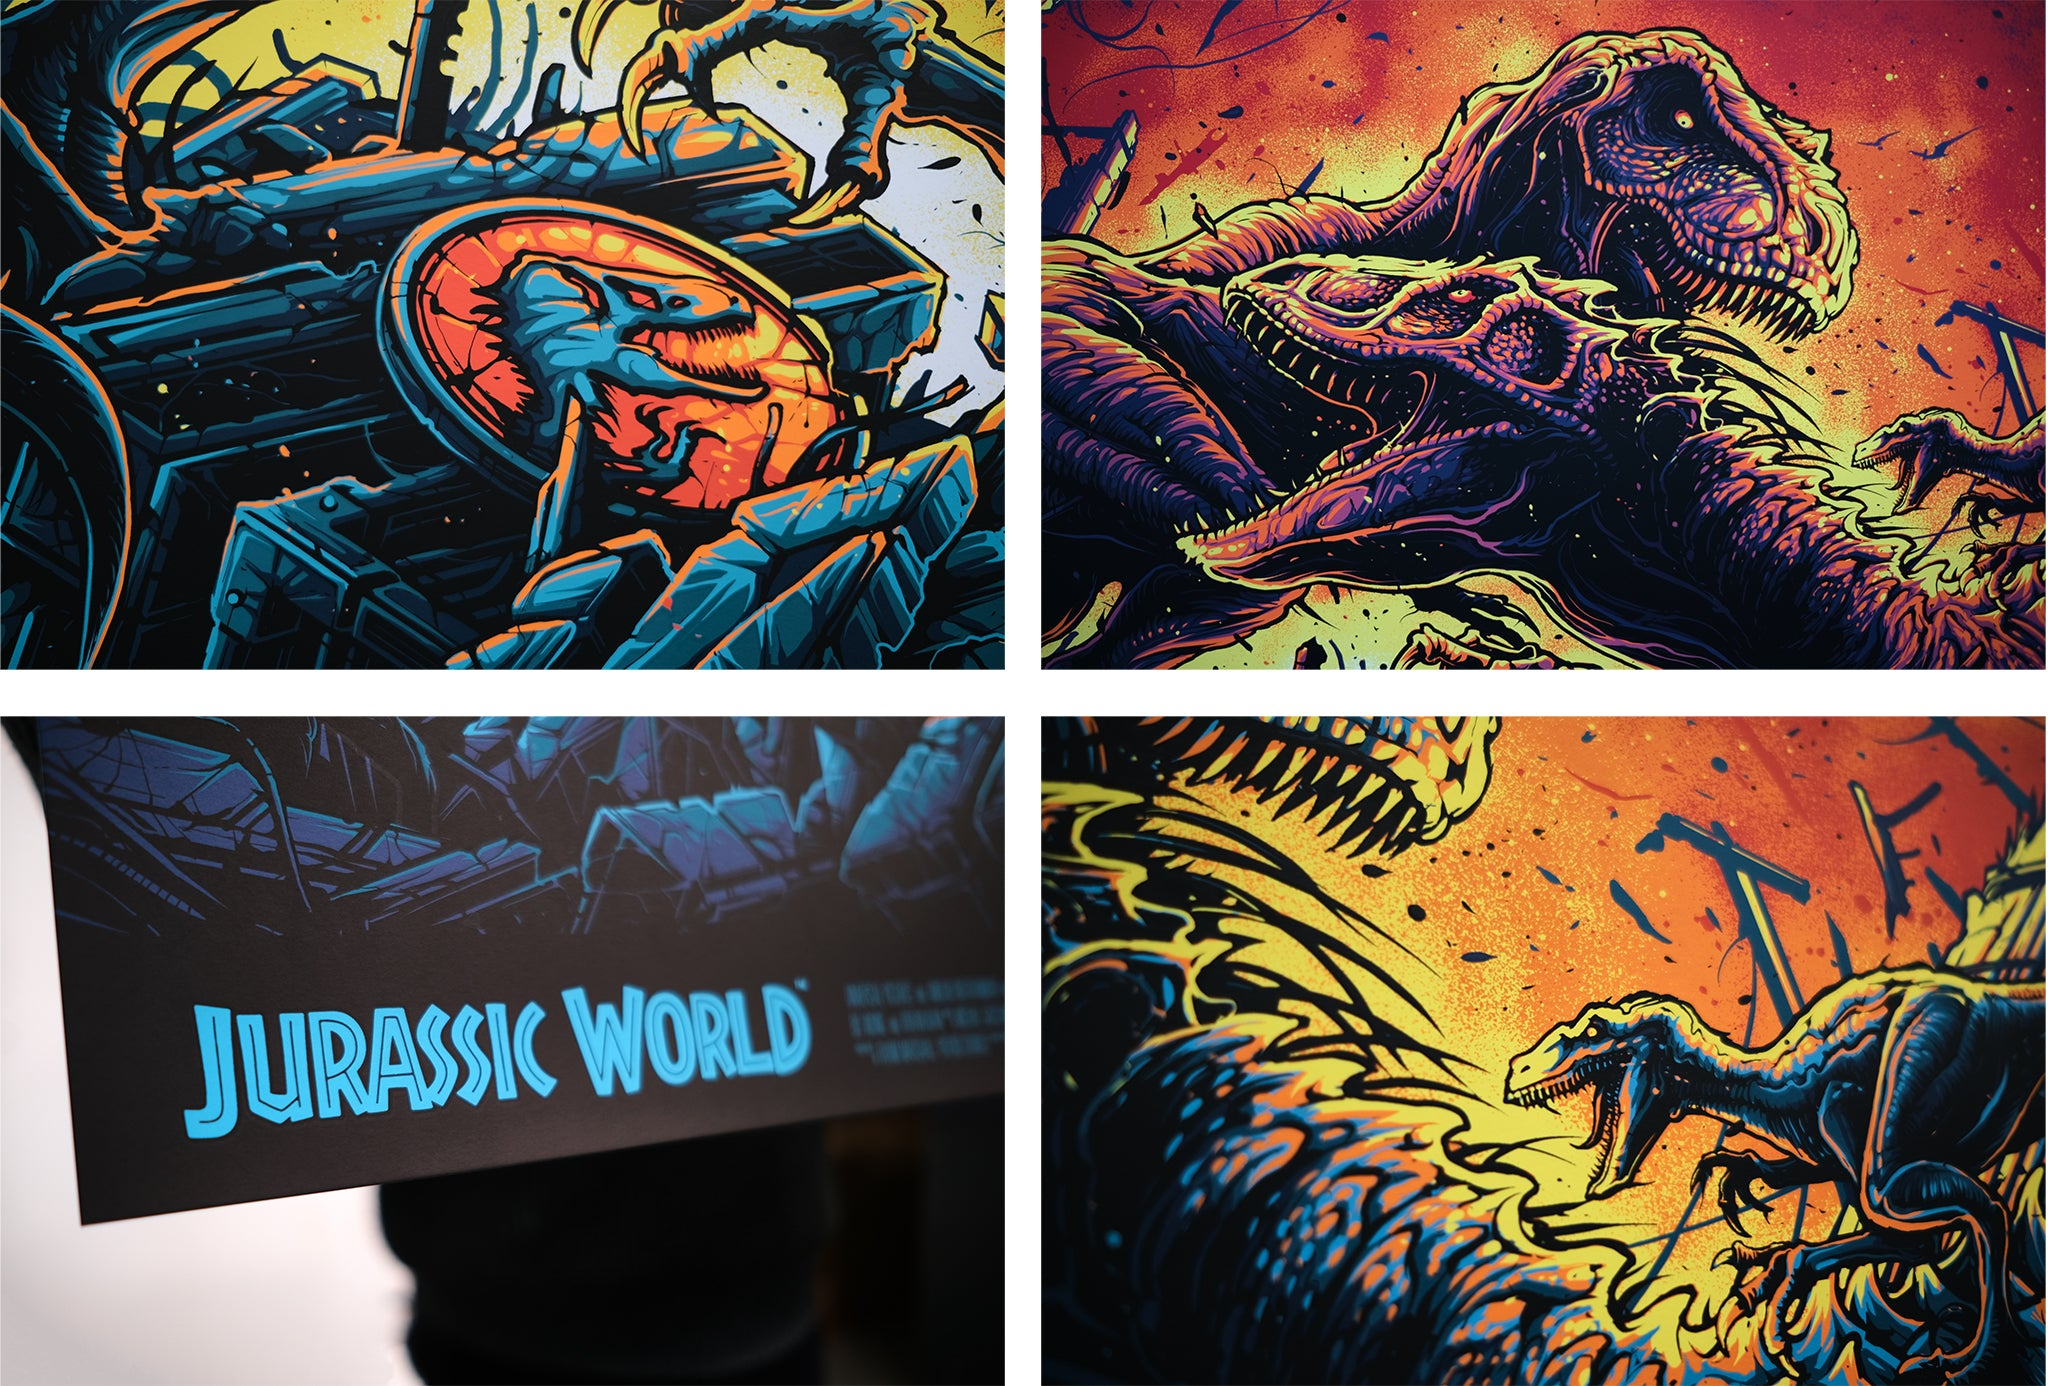 Jurassic World screen printed posters by Dan Mumford, Printed by White Duck Editions for Zavvi Gallery.